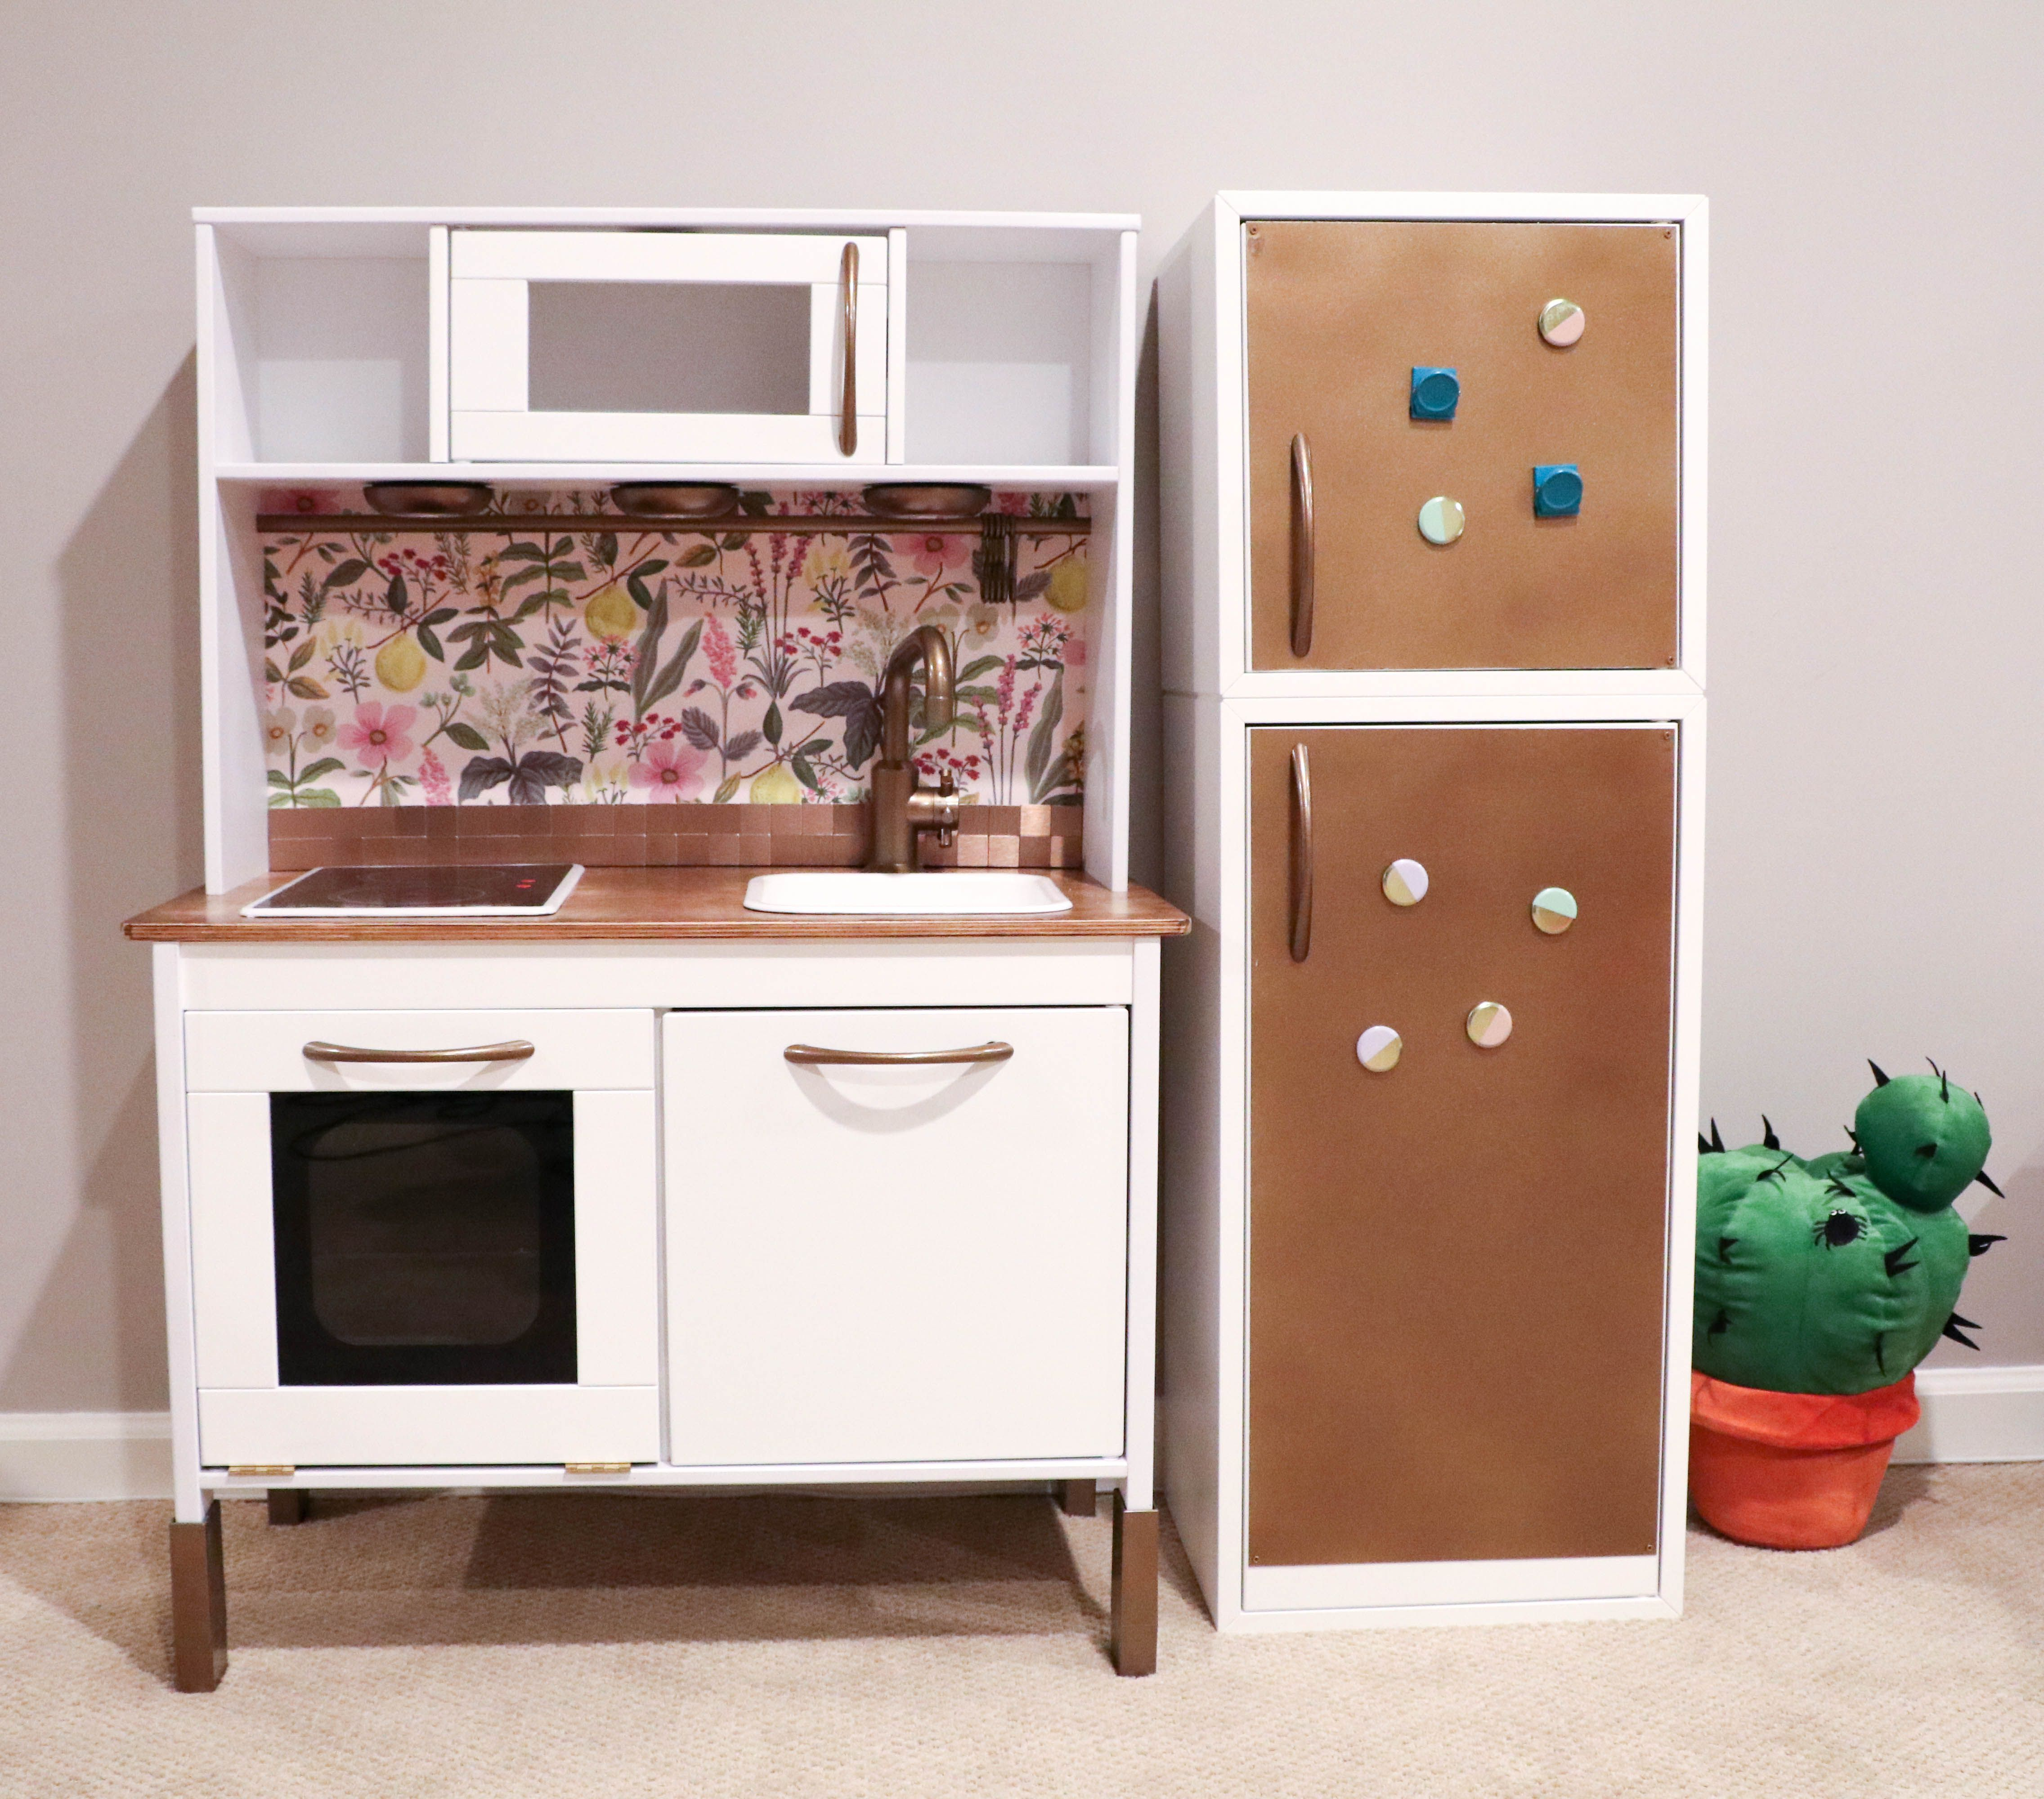 Pin by SamanthaAnne Hager on play kitchen Play kitchen